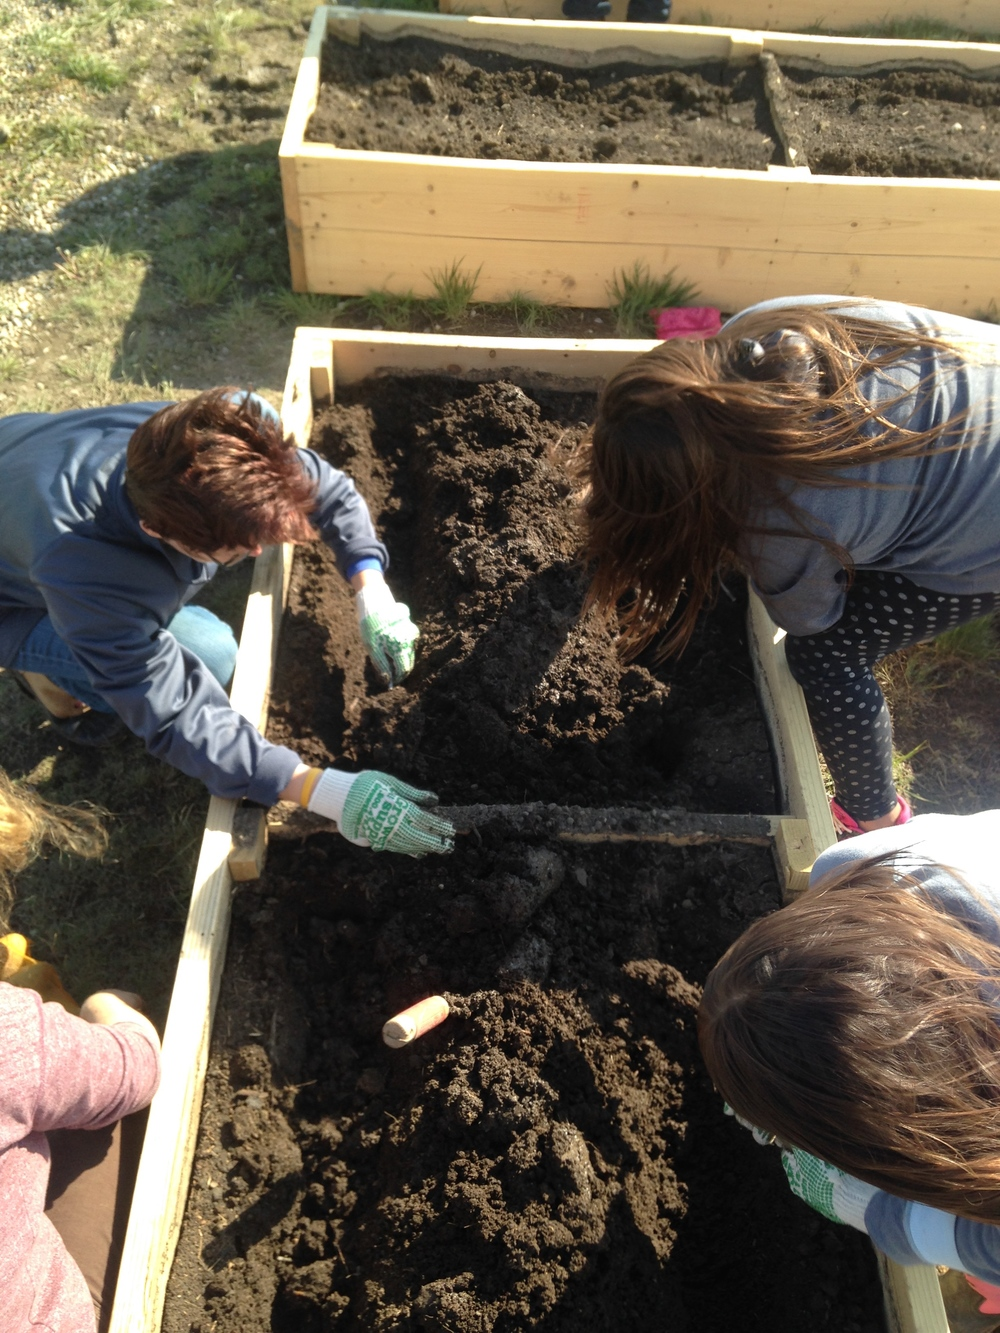 Garden fun:  The kids plant potatoes during garden class in the new raised beds!